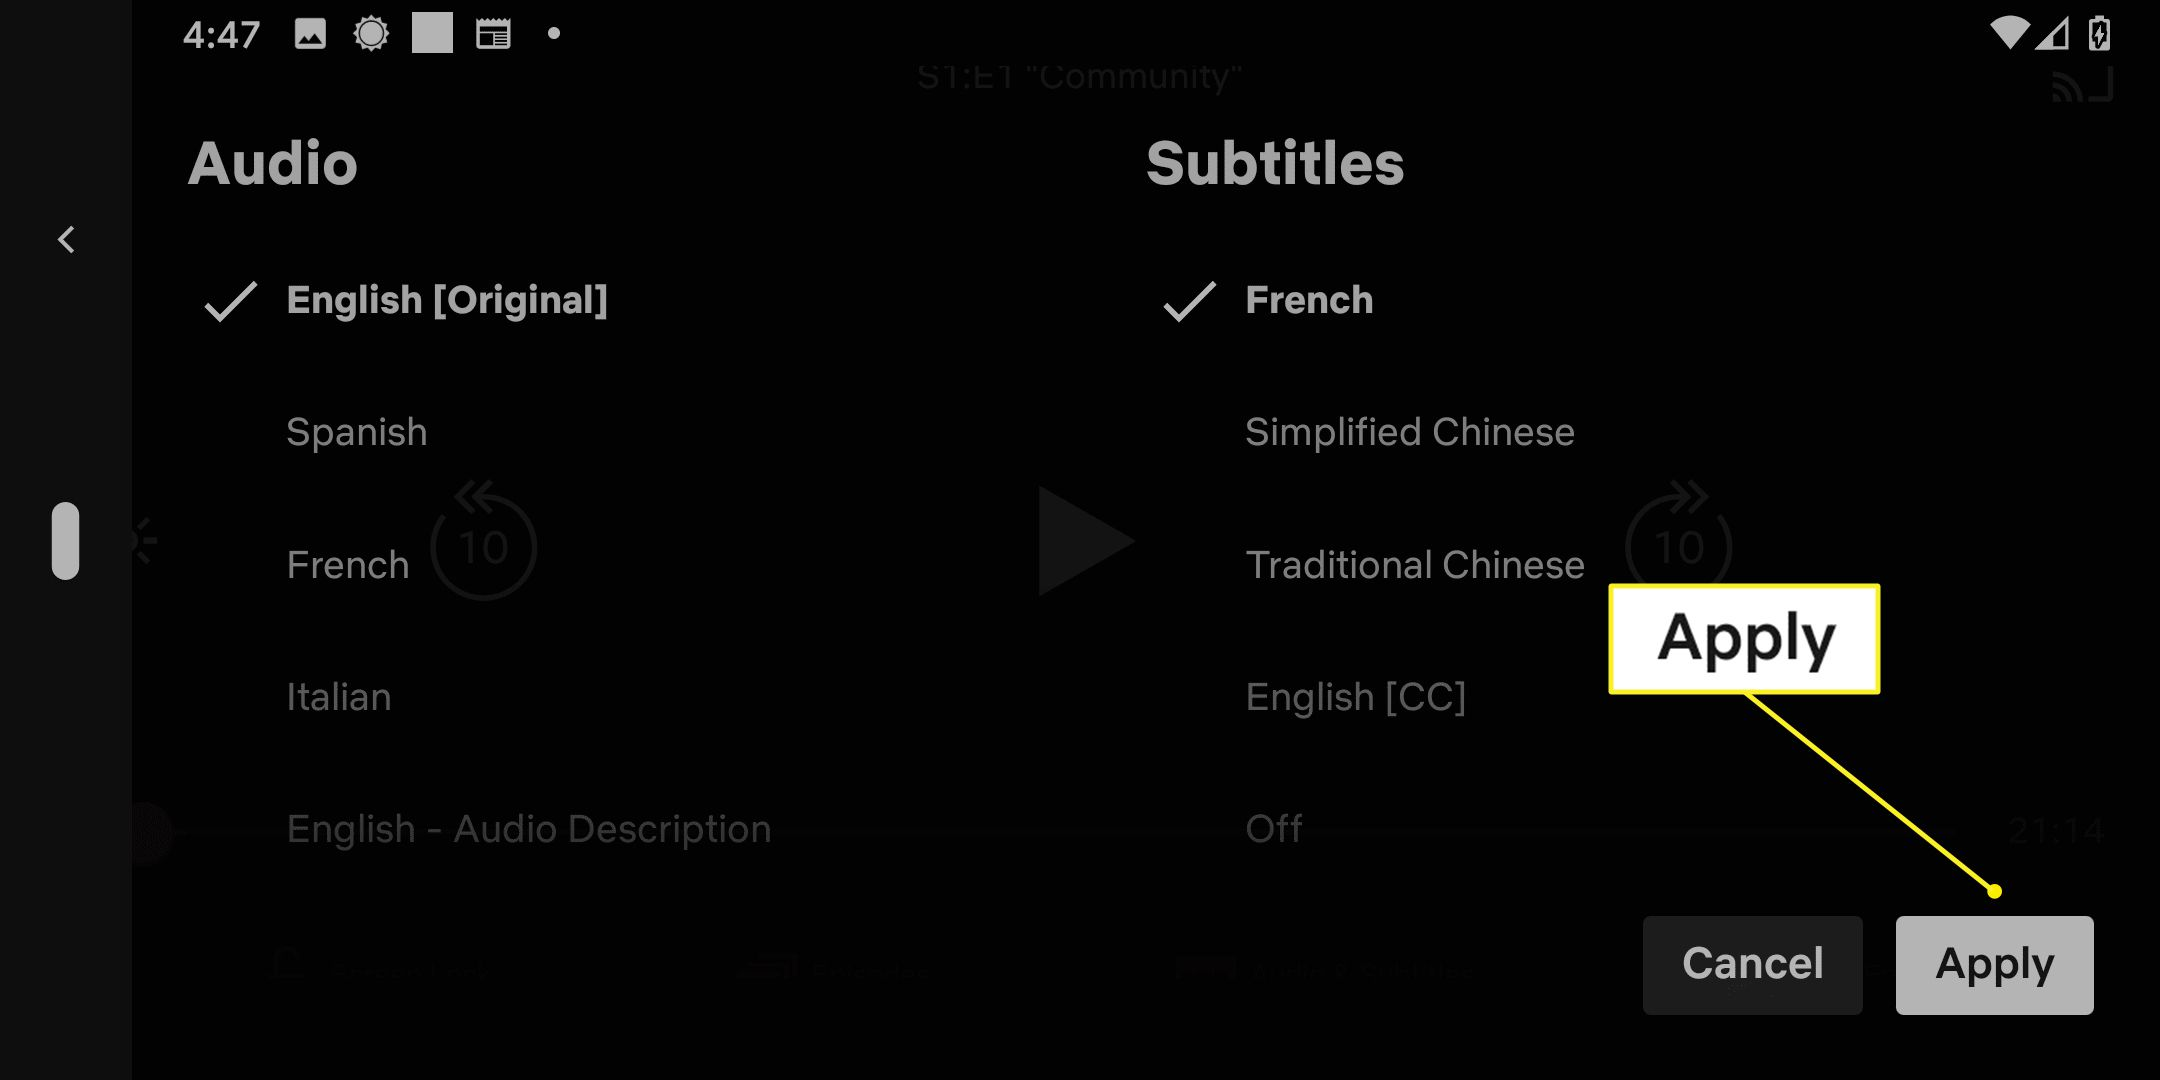 Subtitle options in the Netflix app with Apply highlighted